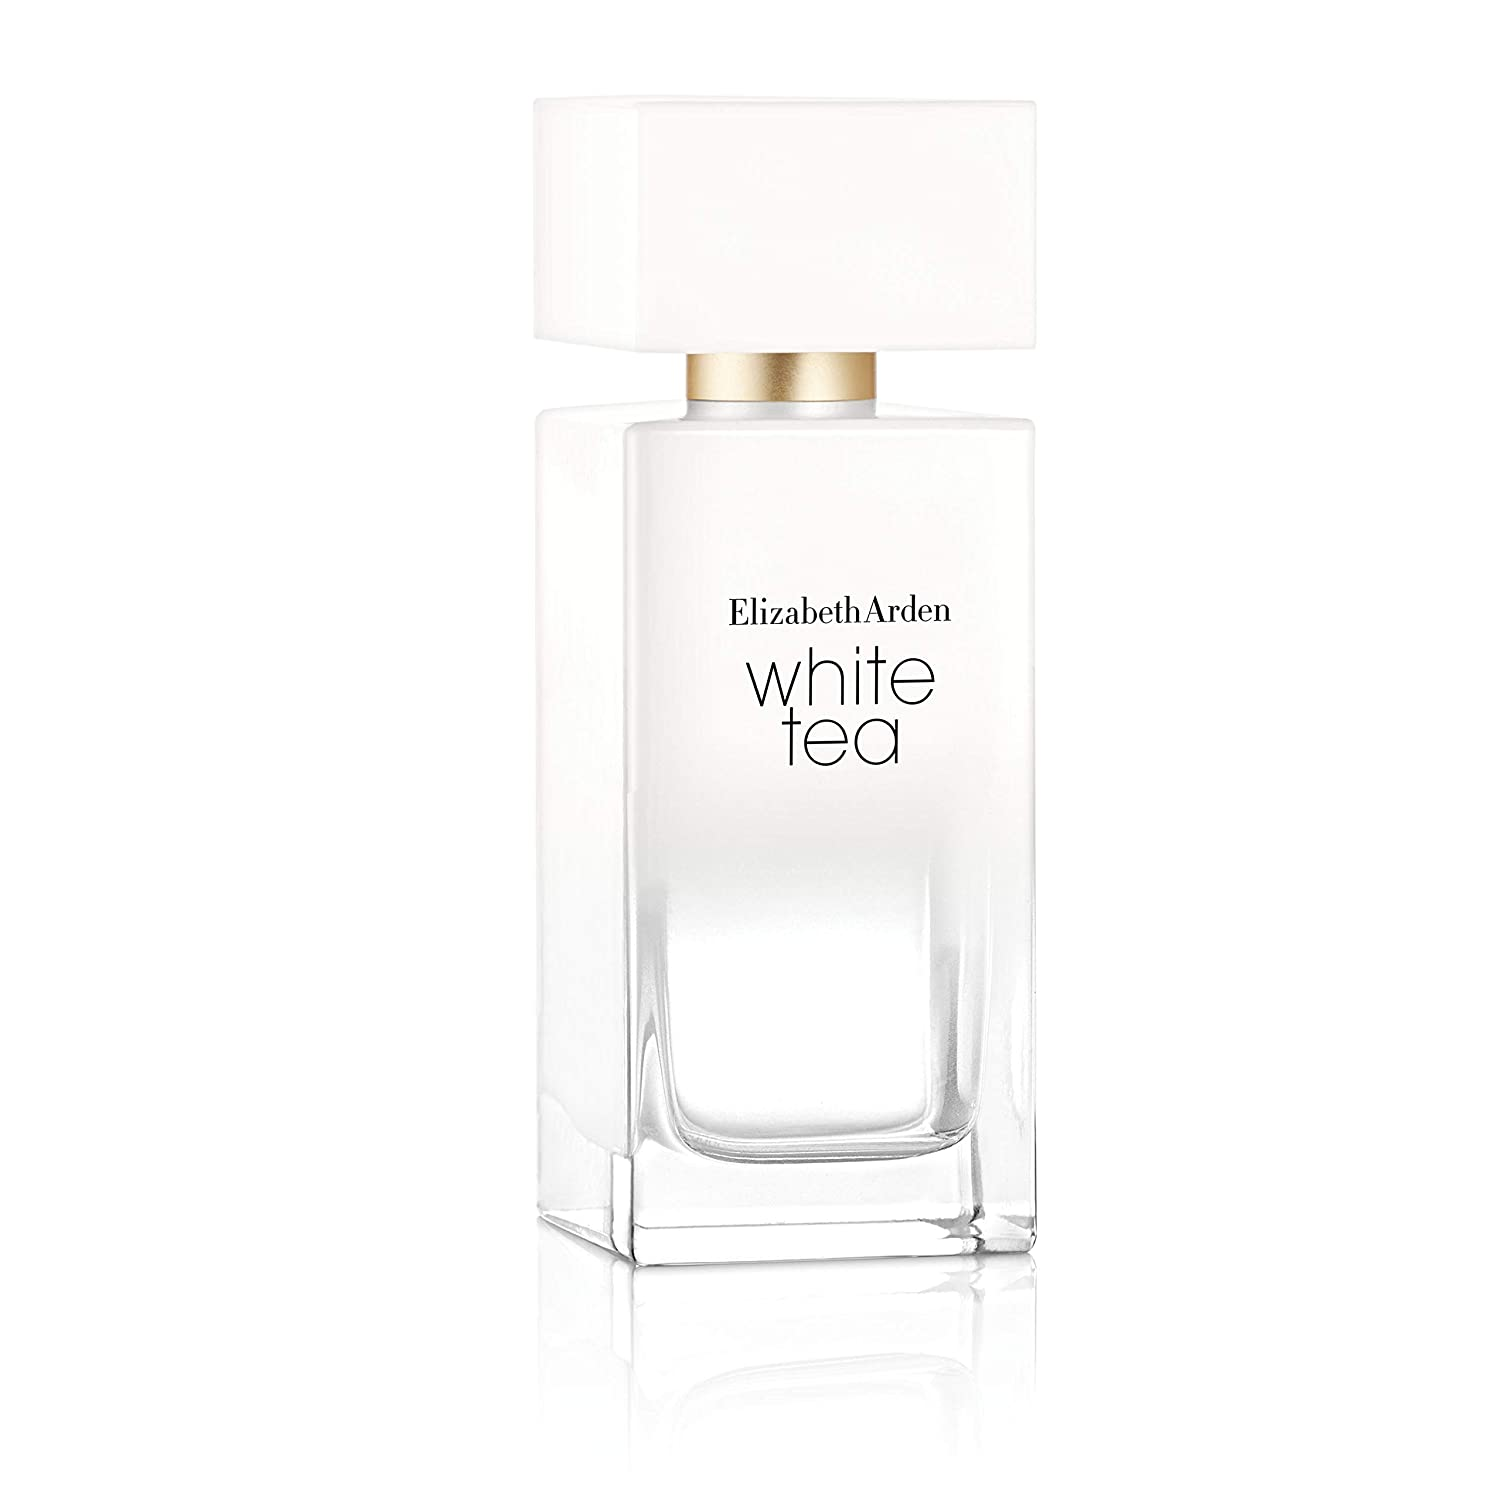 Elizabeth Arden White Tea Eau de Toilette 100ml A0106574